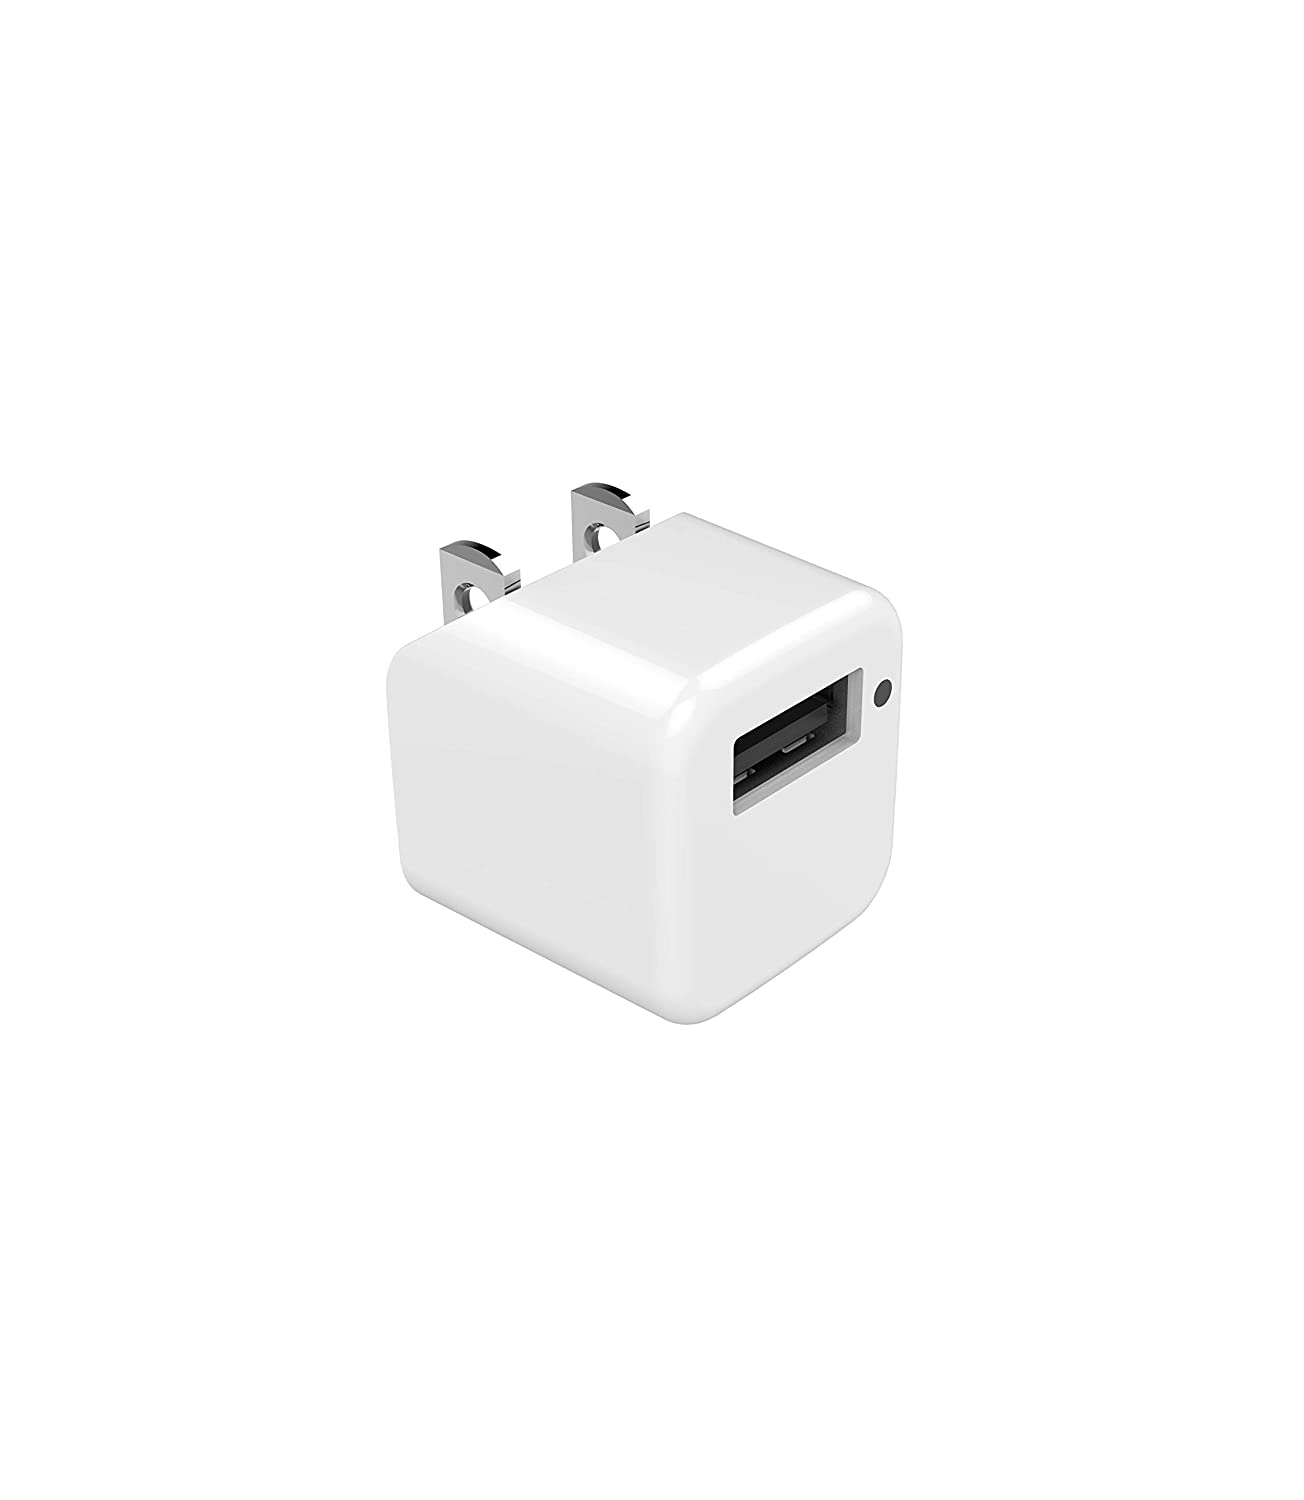 eeco Single-Port Ultra Small USB Wall Charger, 5V 1A Portable Travel Wall Charger with Foldable Plug and SmartIC Charging for iPhone, iPad Air/Pro/Mini, Samsung, Nexus, HTC, LG, and many more Devices EE110201WW